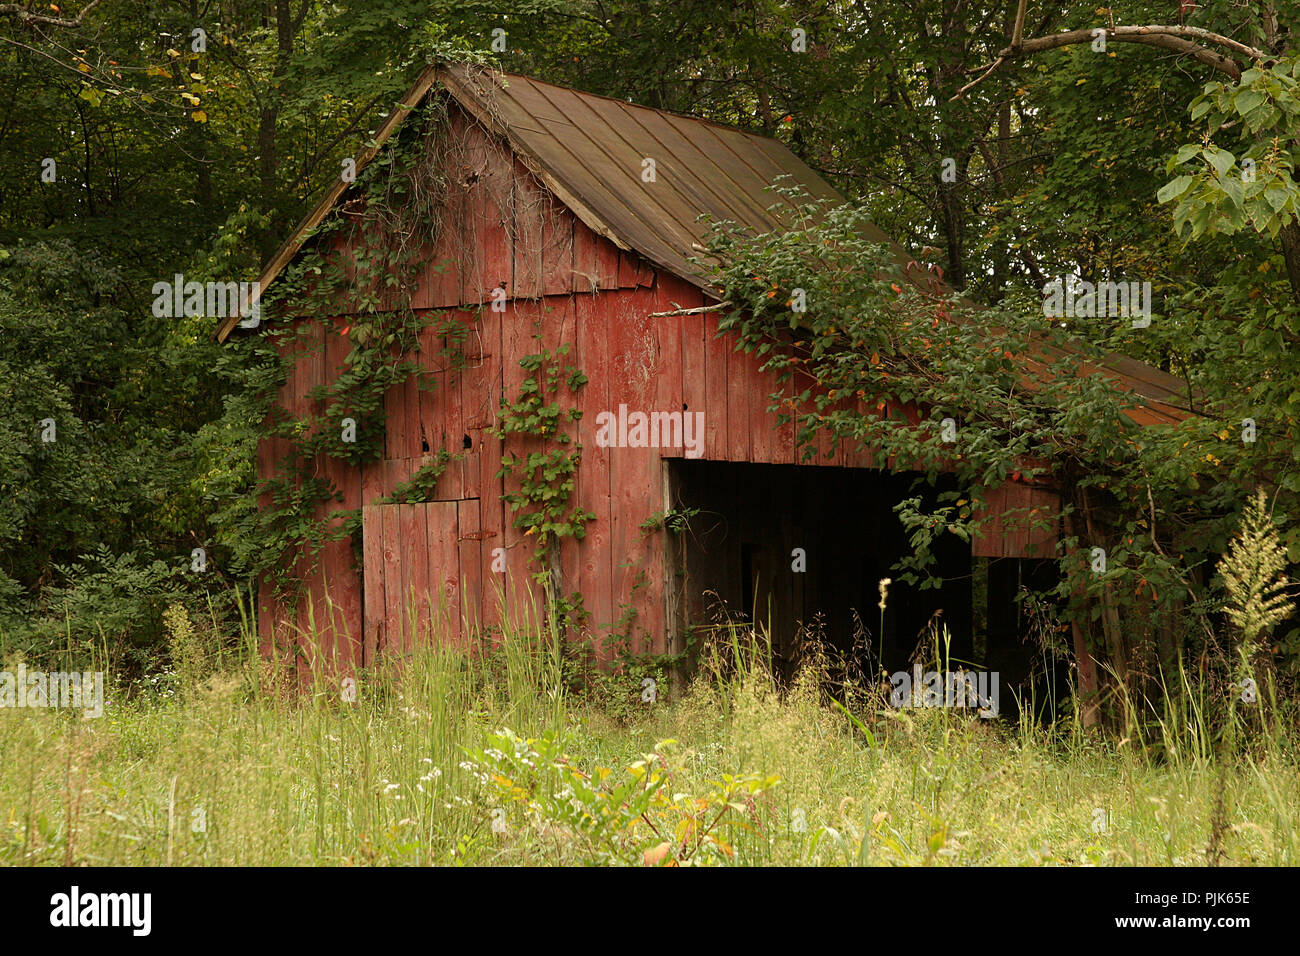 Abandoned shed in rural Virginia - Stock Image